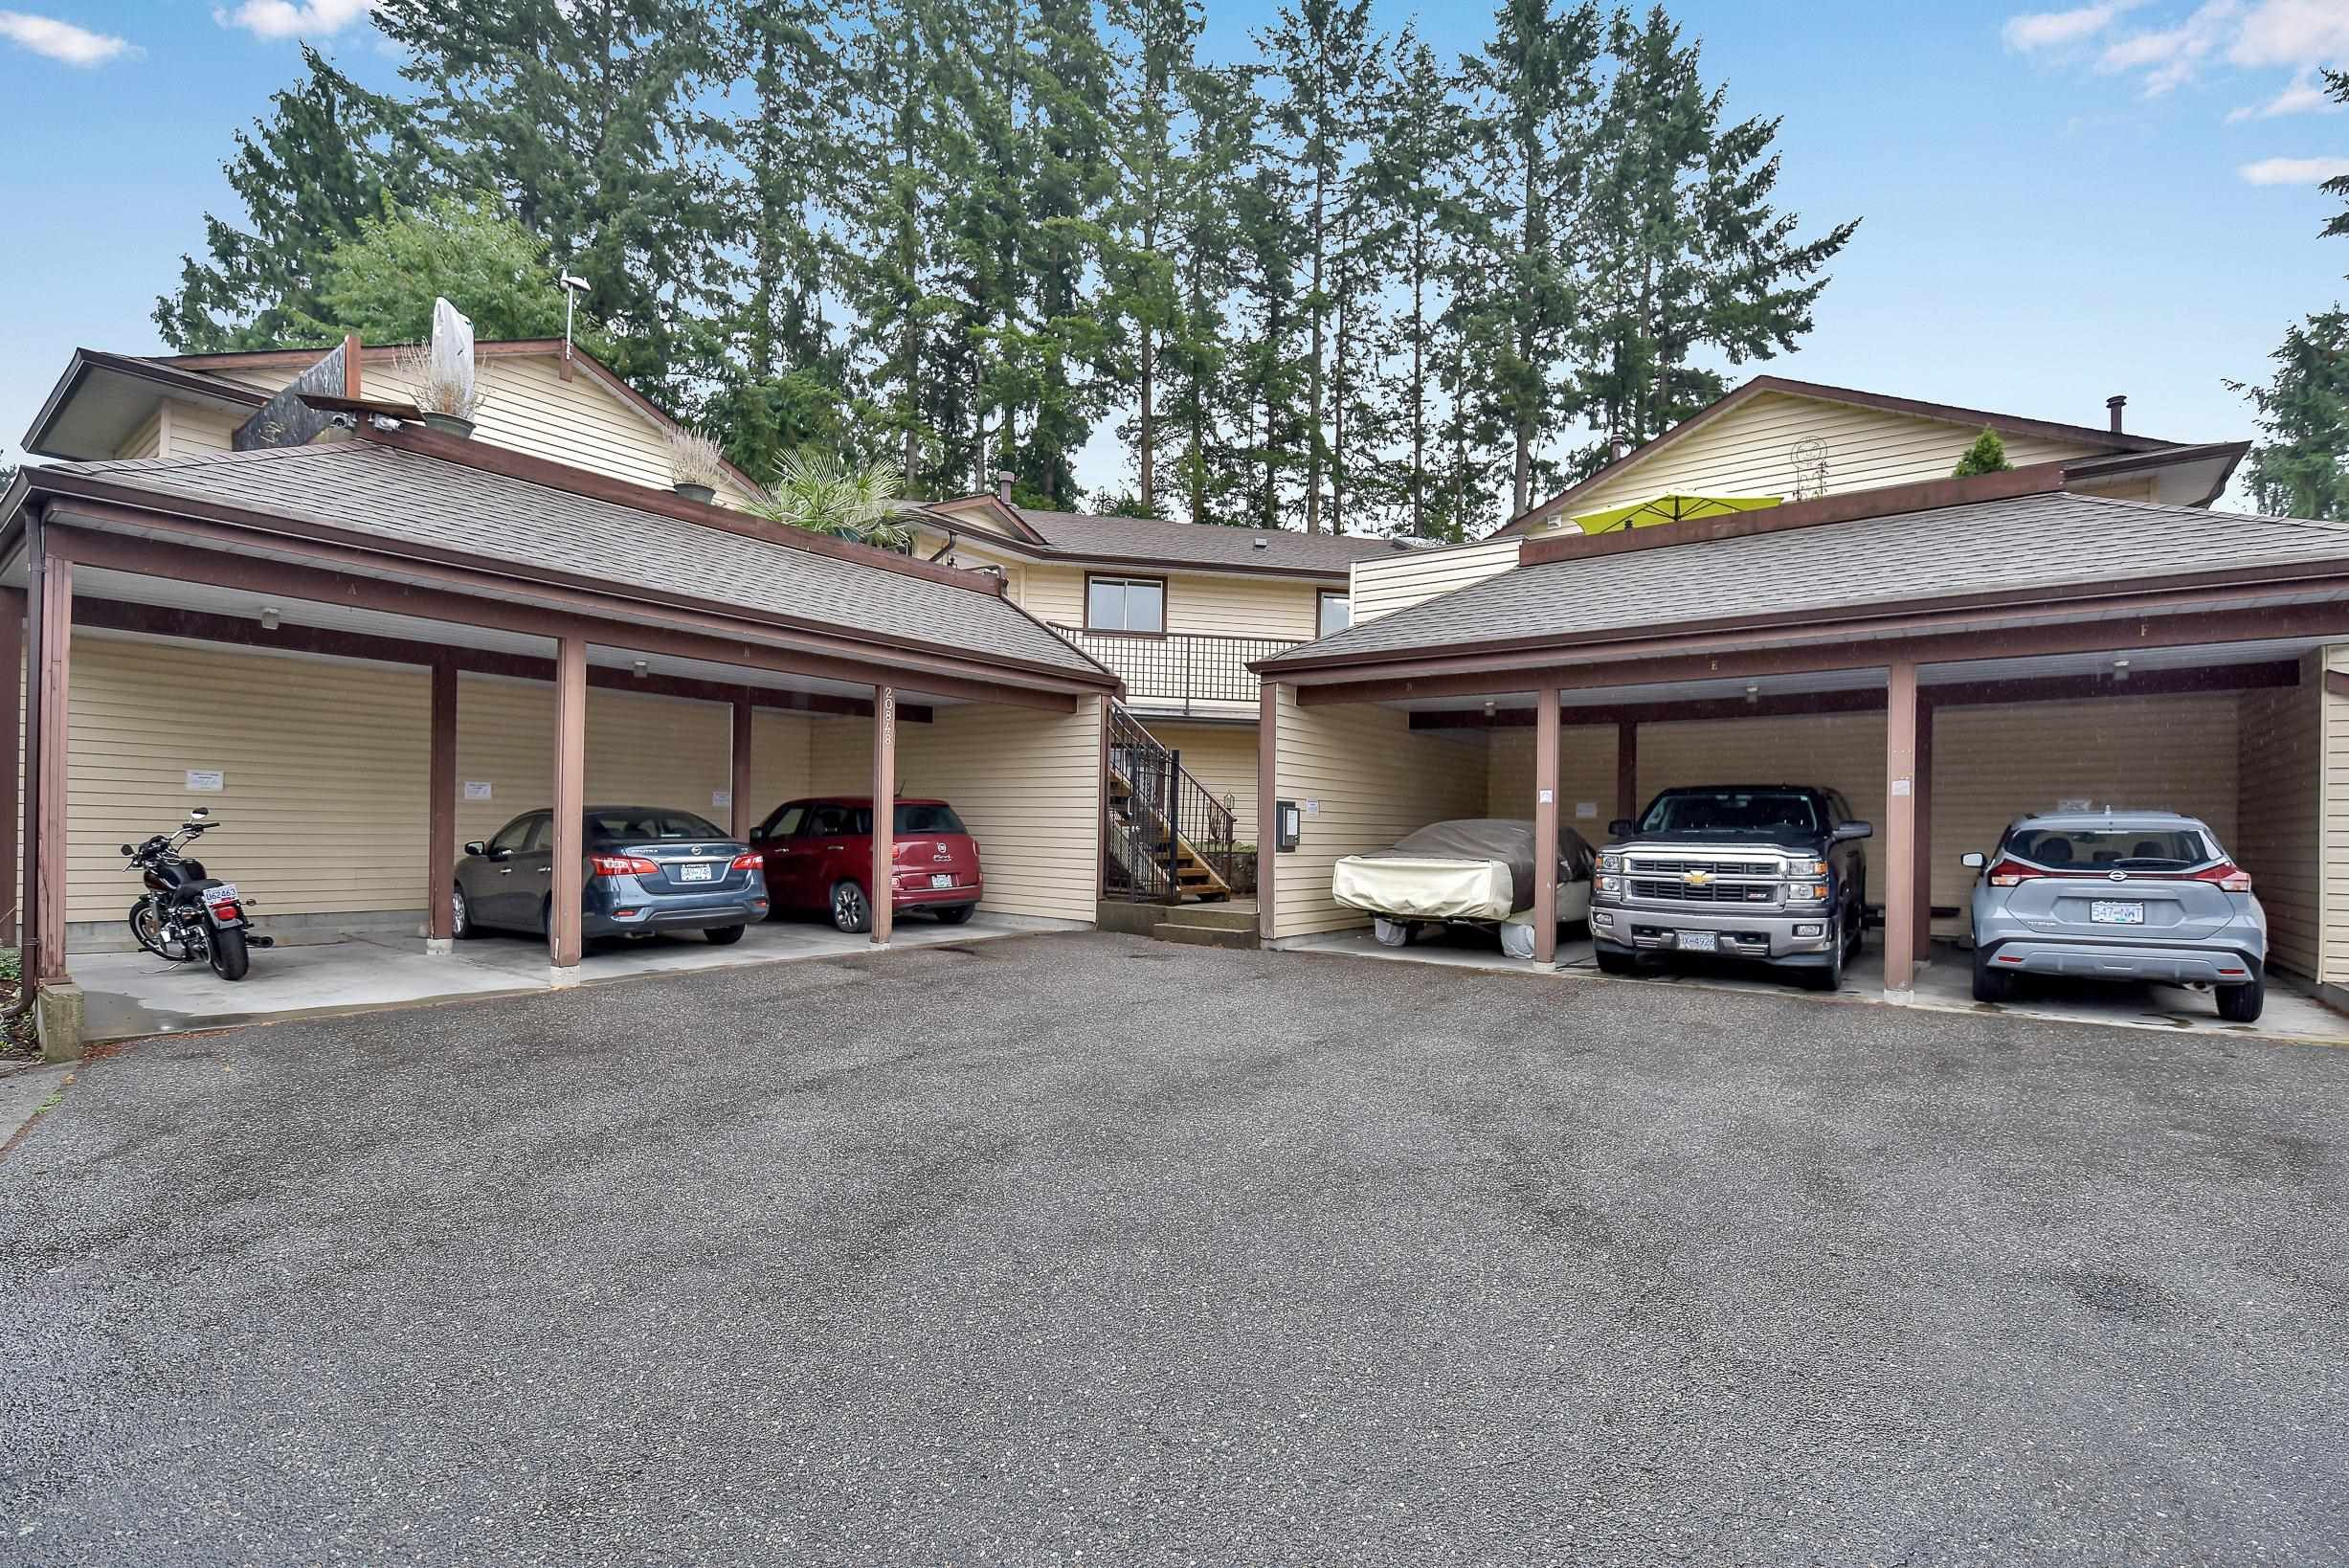 """Main Photo: 5 20848 DOUGLAS Crescent in Langley: Langley City Townhouse for sale in """"brookside terrace"""" : MLS®# R2611248"""